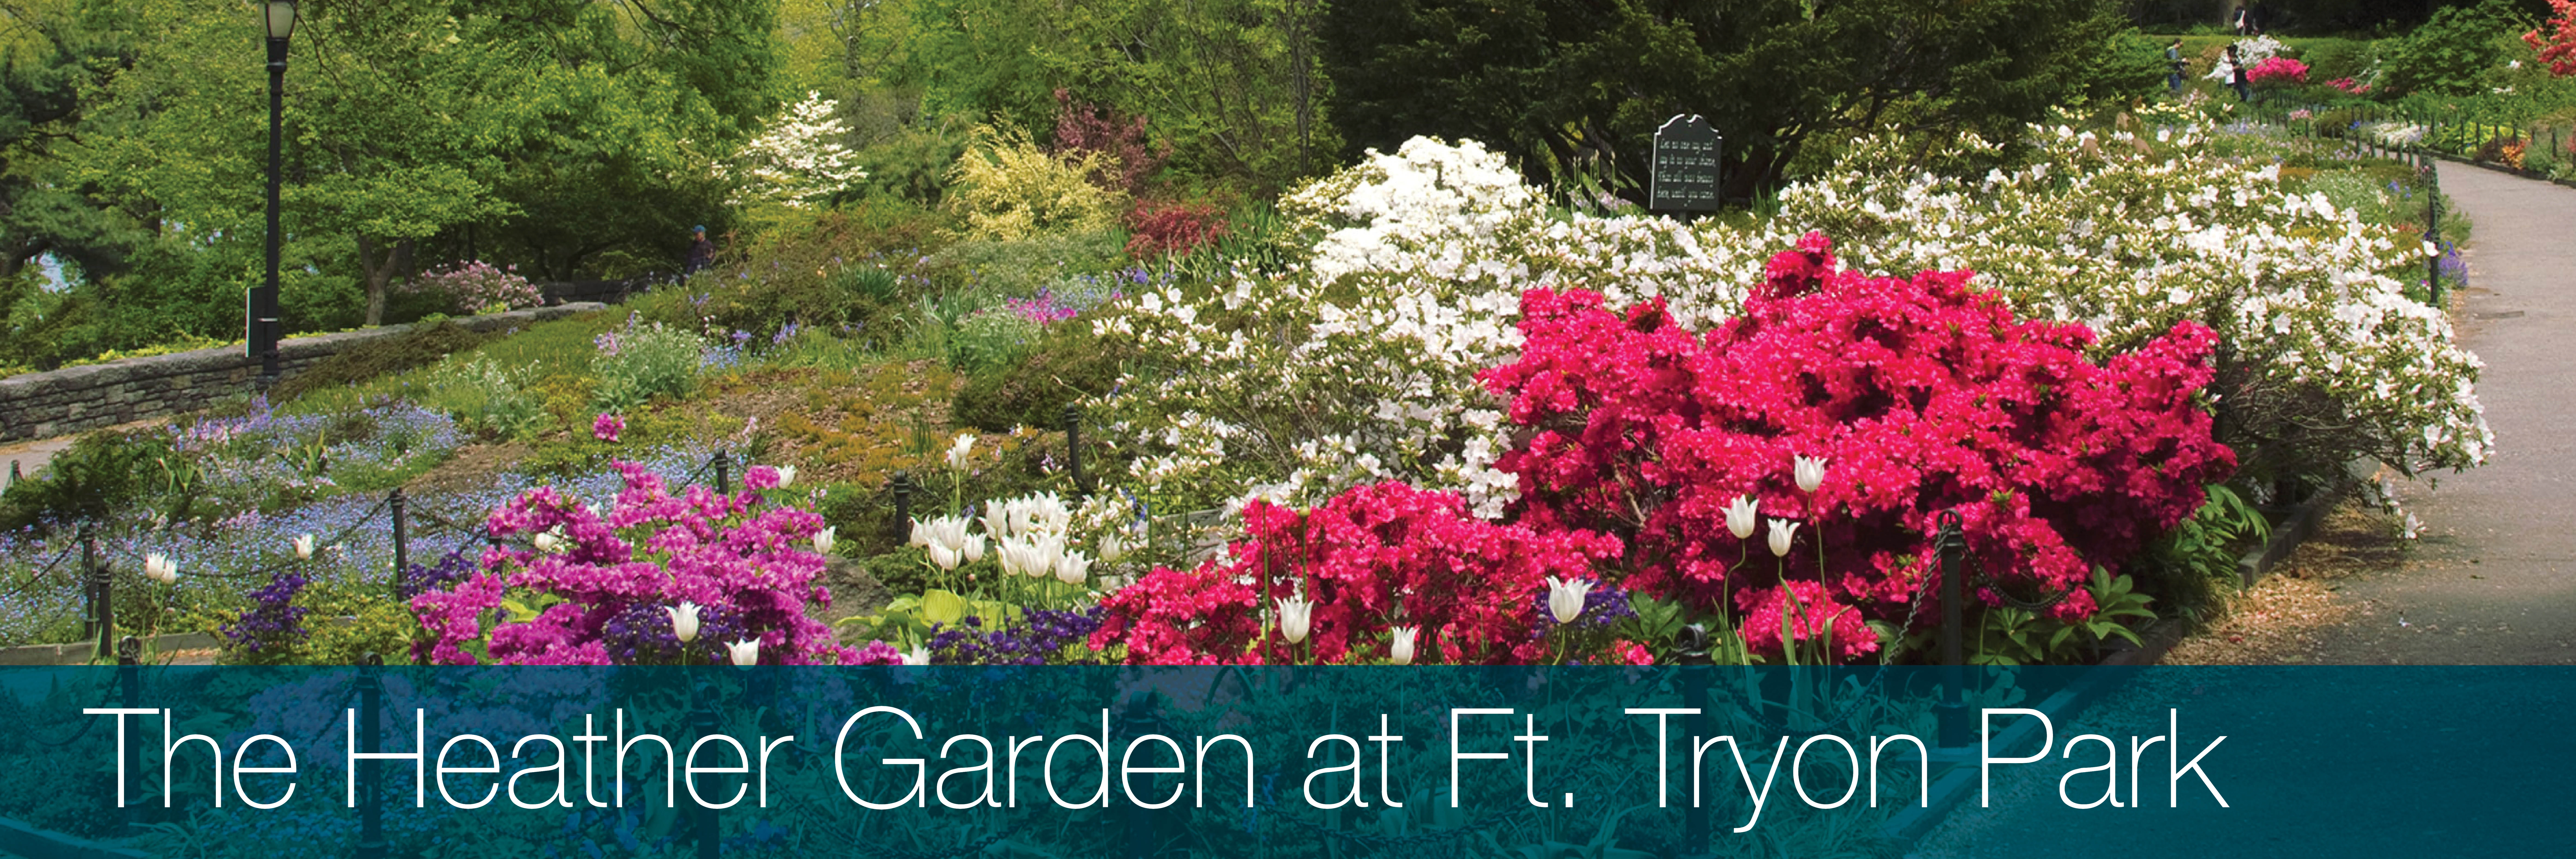 the-heather-garden-at-ft.-tryon-park-1